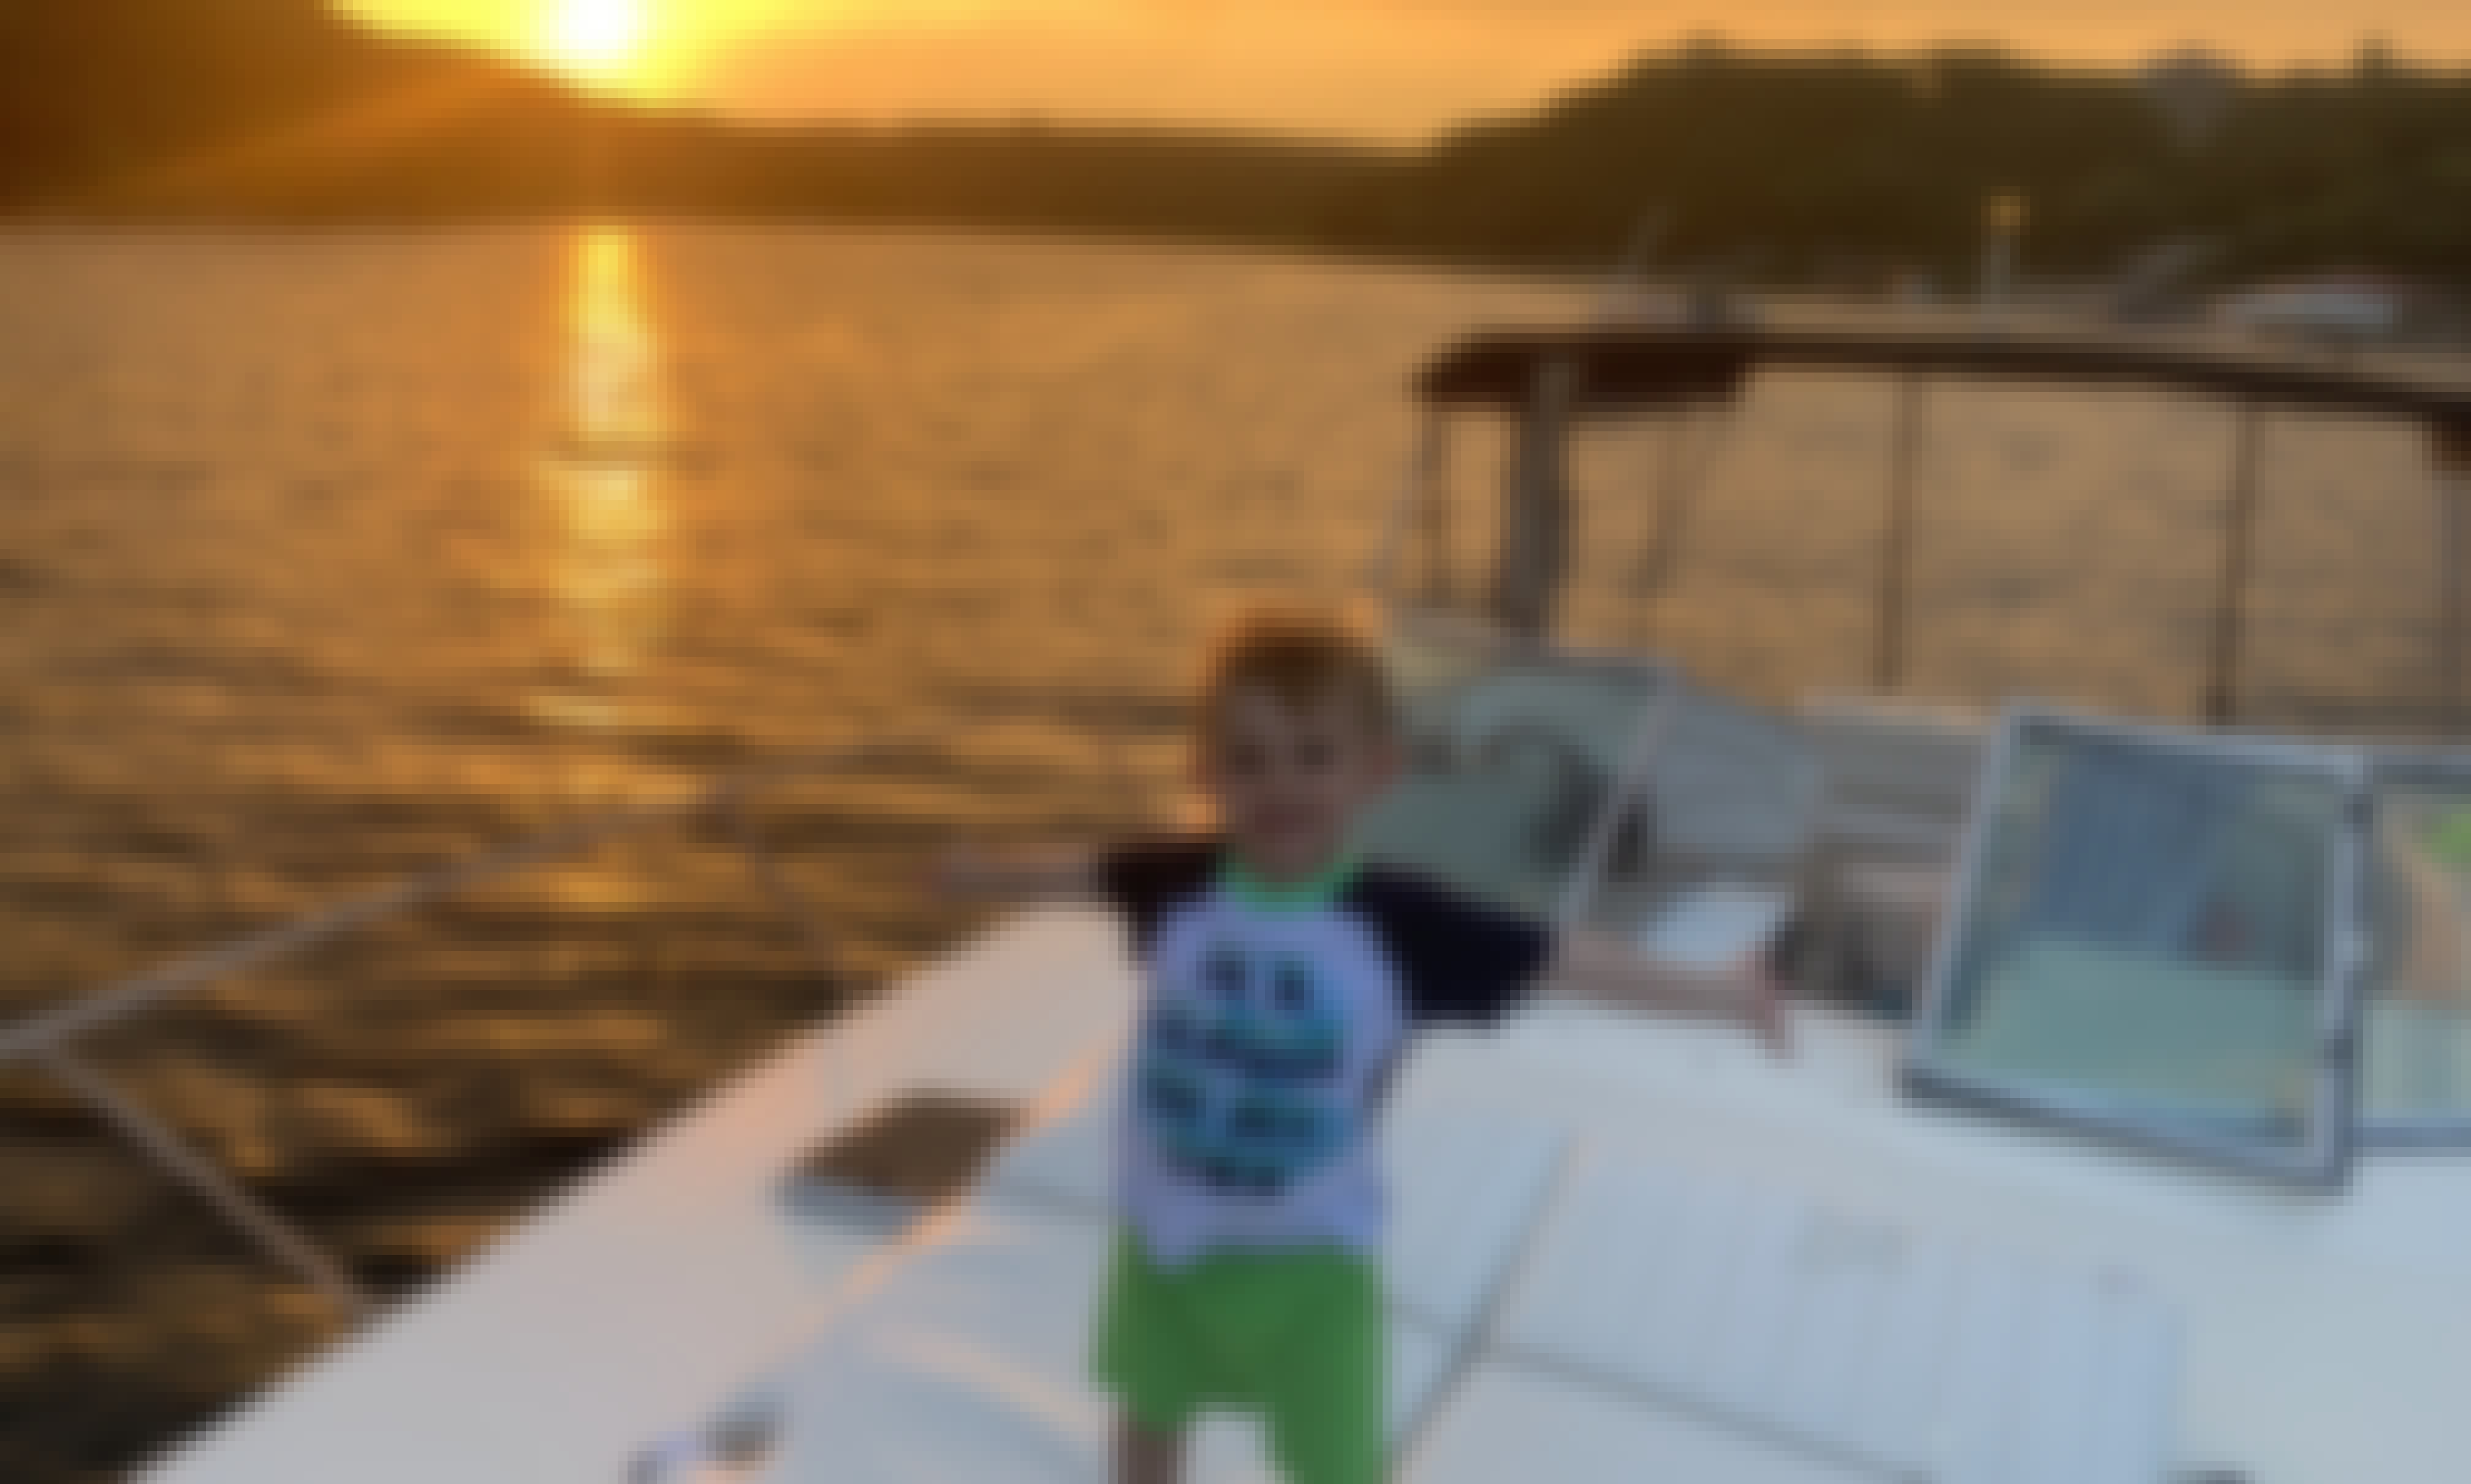 Yacht Charter Available for fun day at Devils Cove or Sunset Charter